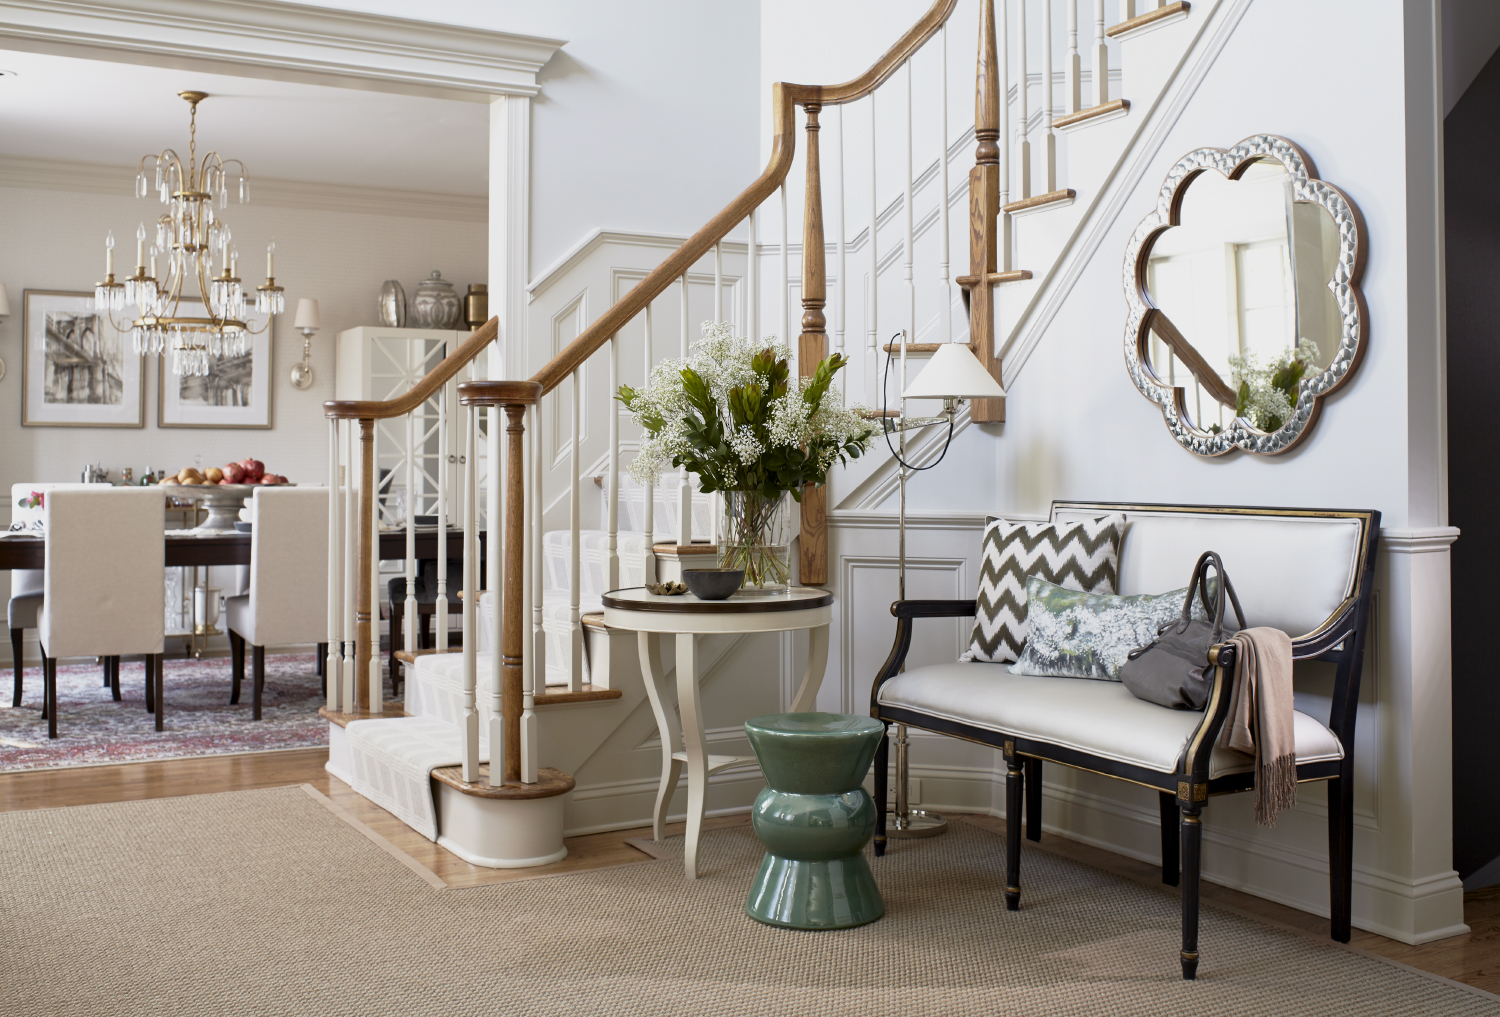 Foyer with French bench in white leather, sisal carpet, and accent table. By Uma Stewart Interiors & Lifestyle